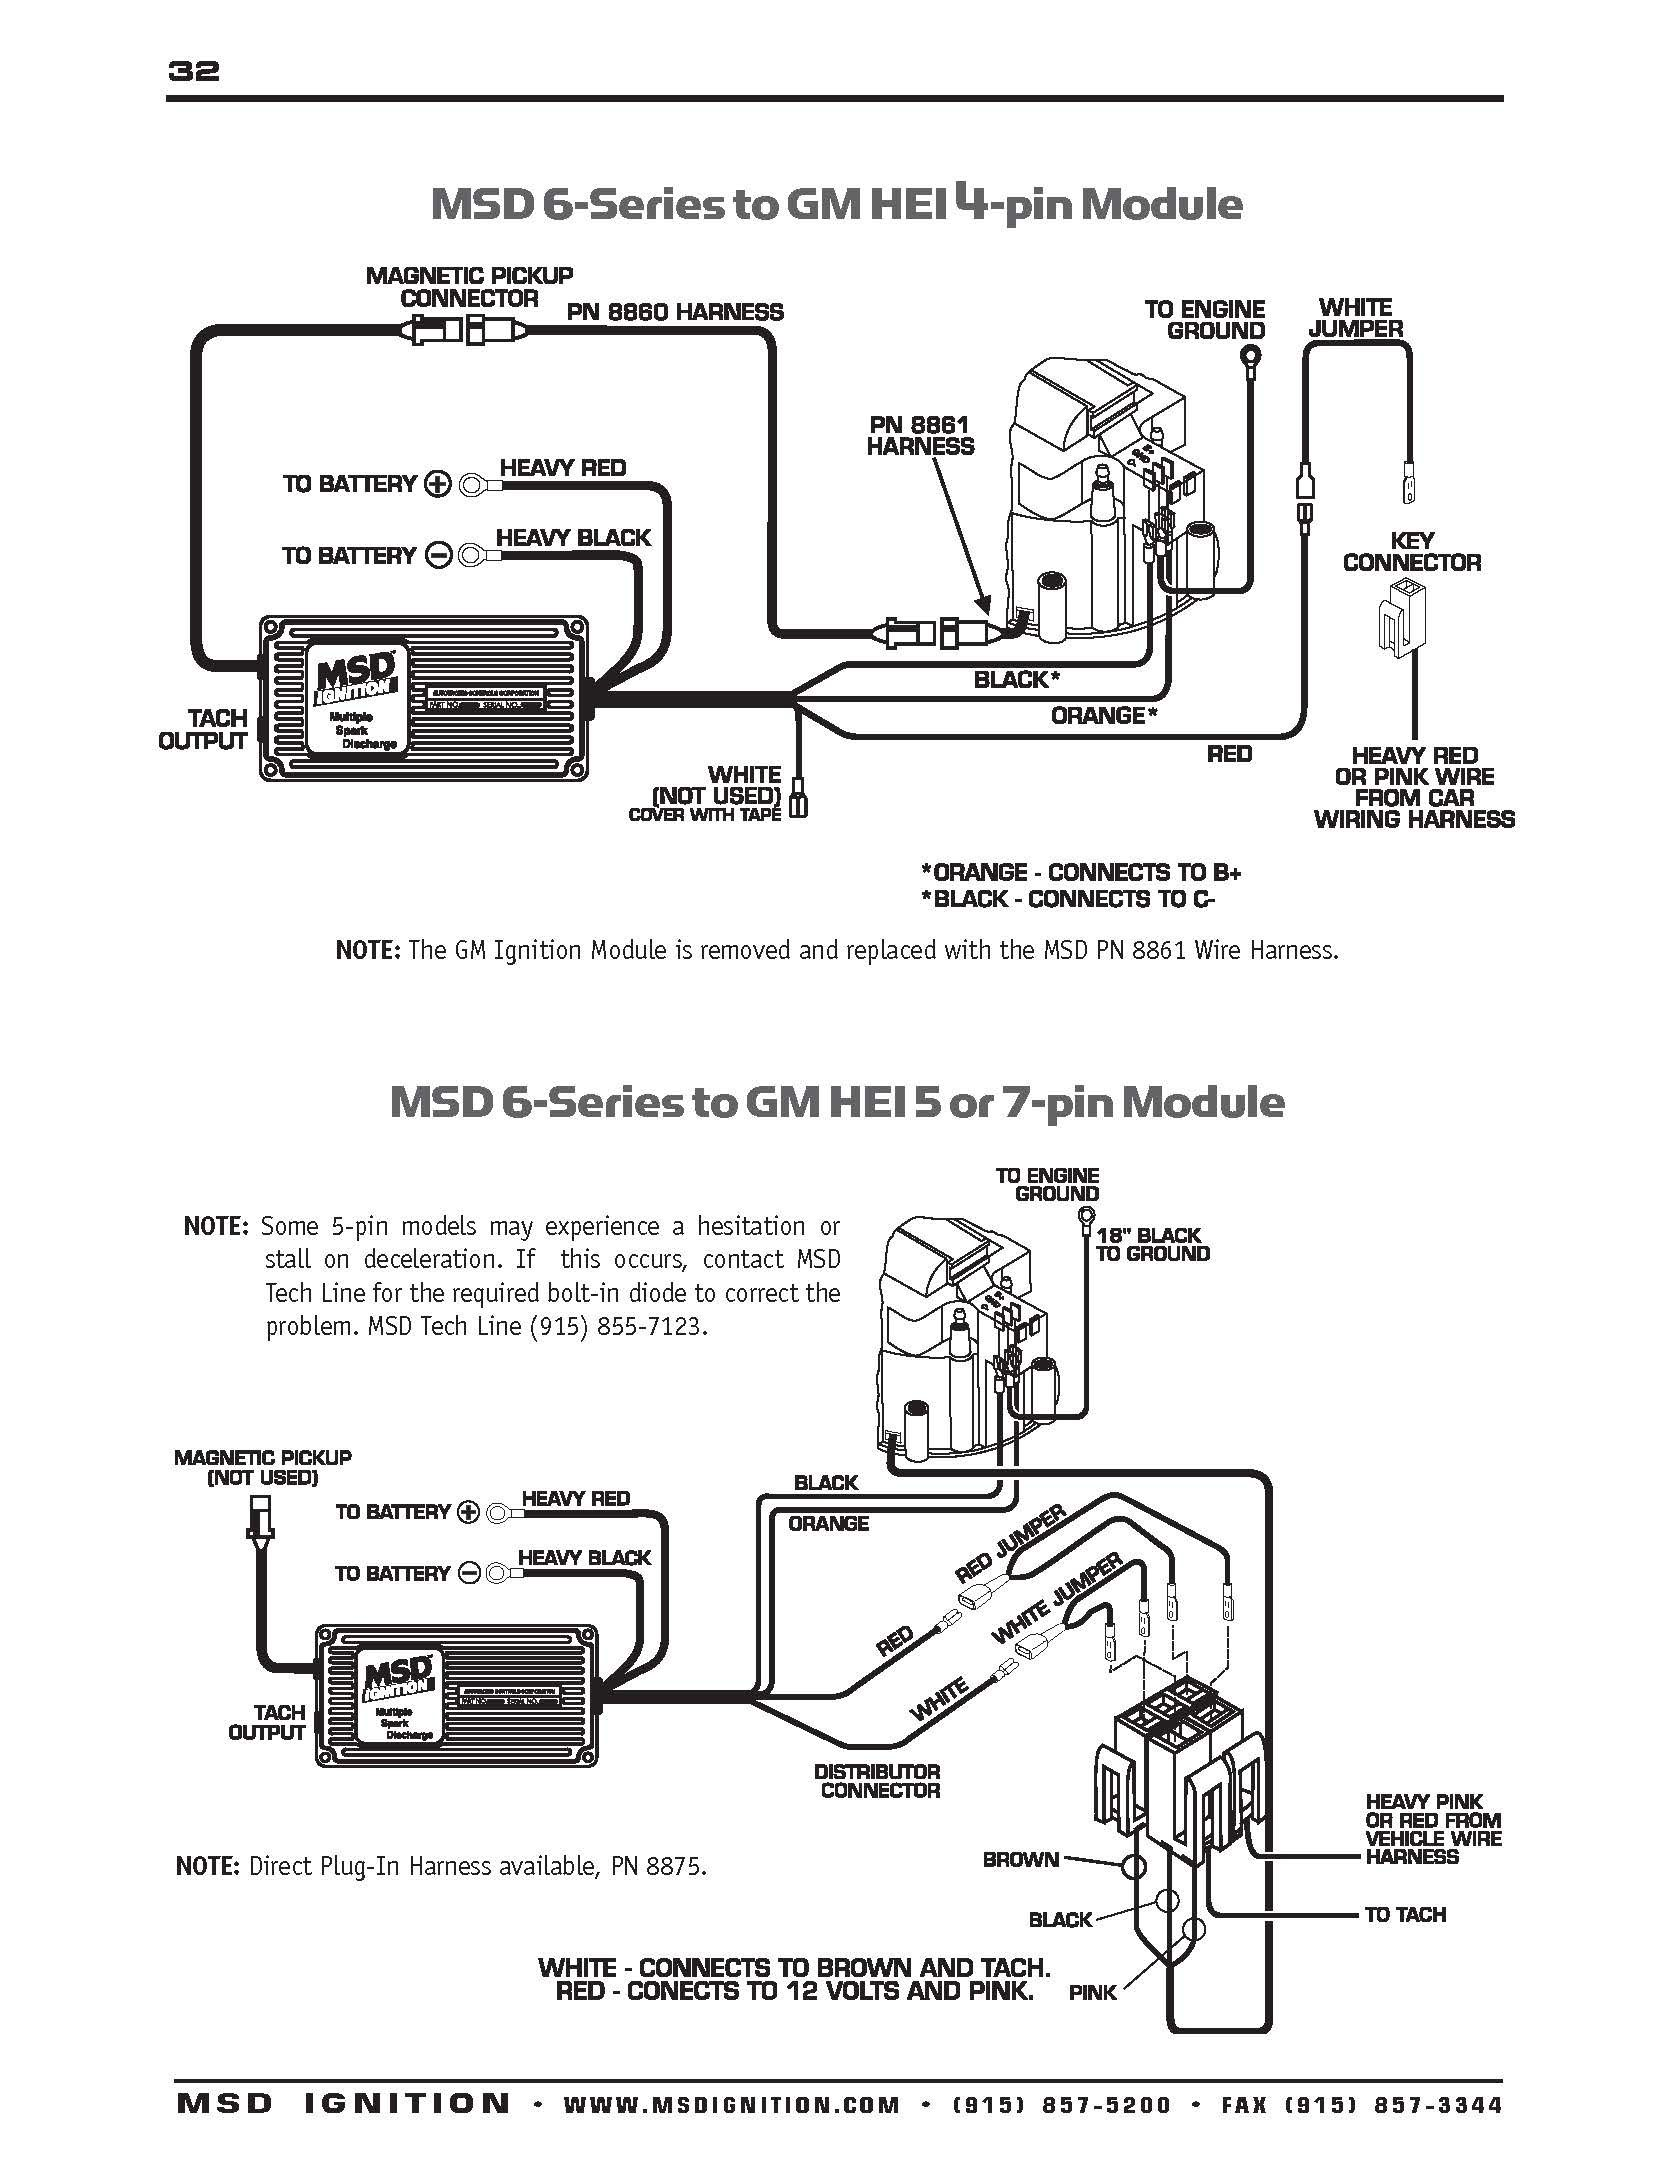 Msd Ignition Wiring Diagrams 1966 Chevelle Pinterest Cars Ignition Wire  Diagram Ford 5600 Ignition Wire Diagram